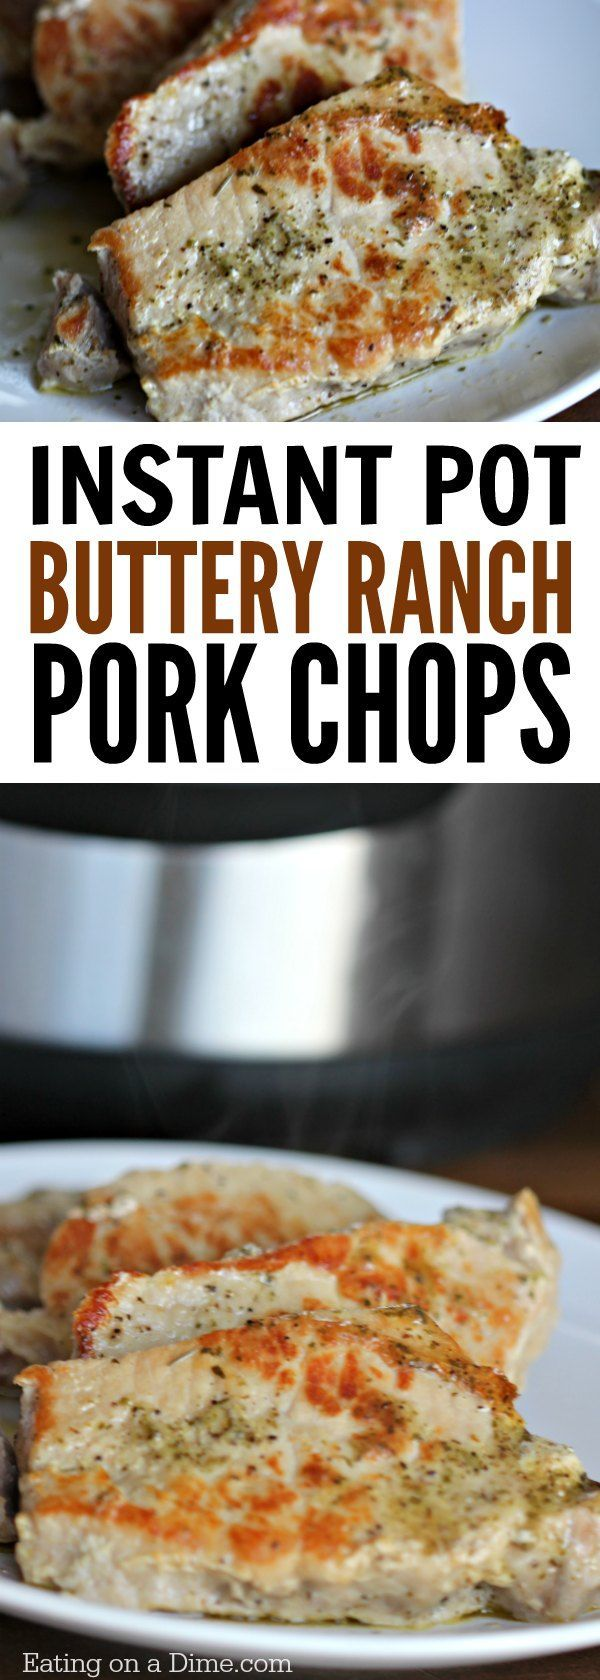 http://rubies.work/0147-ruby-rings/ Easy Electric pressure cooker recipe! You are going to love this quick and easy Instant Pot Boneless Pork Chops Recipe. This delicious ranch pork chops recipe is packed with flavor falls apart because it is so tender. You will love this easy pork recipes!